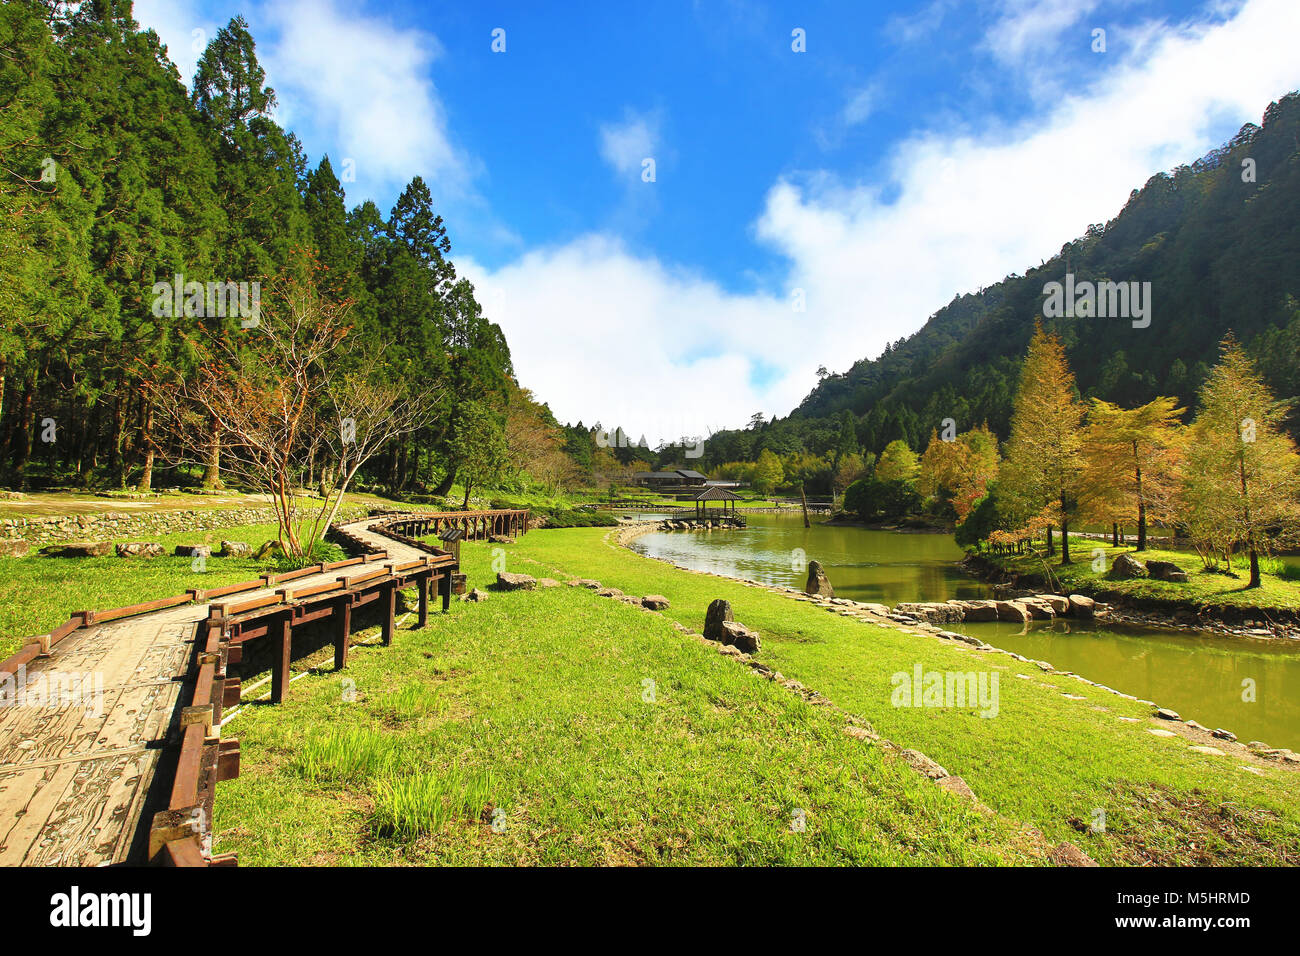 Beautiful lake scenery with winding path and colorful trees in ...